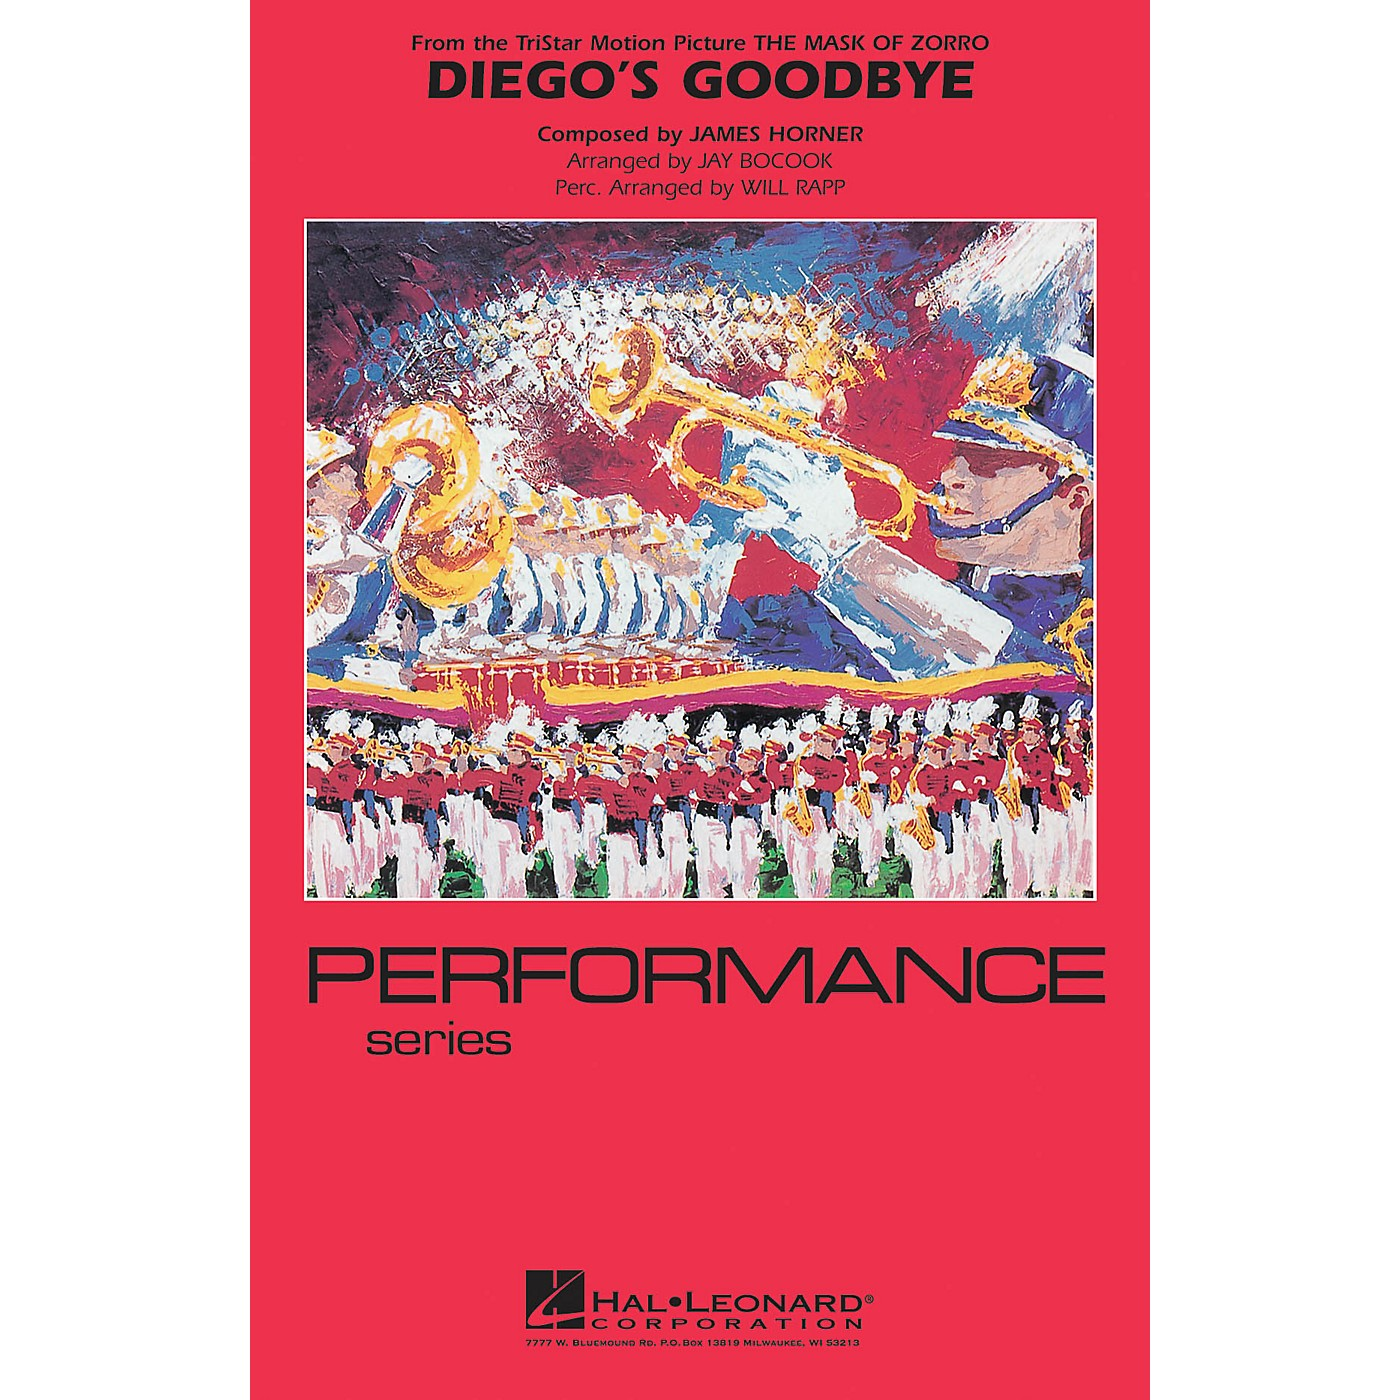 Hal Leonard Diego's Goodbye (from The Mask of Zorro) Marching Band Level 4 Arranged by Jay Bocook thumbnail